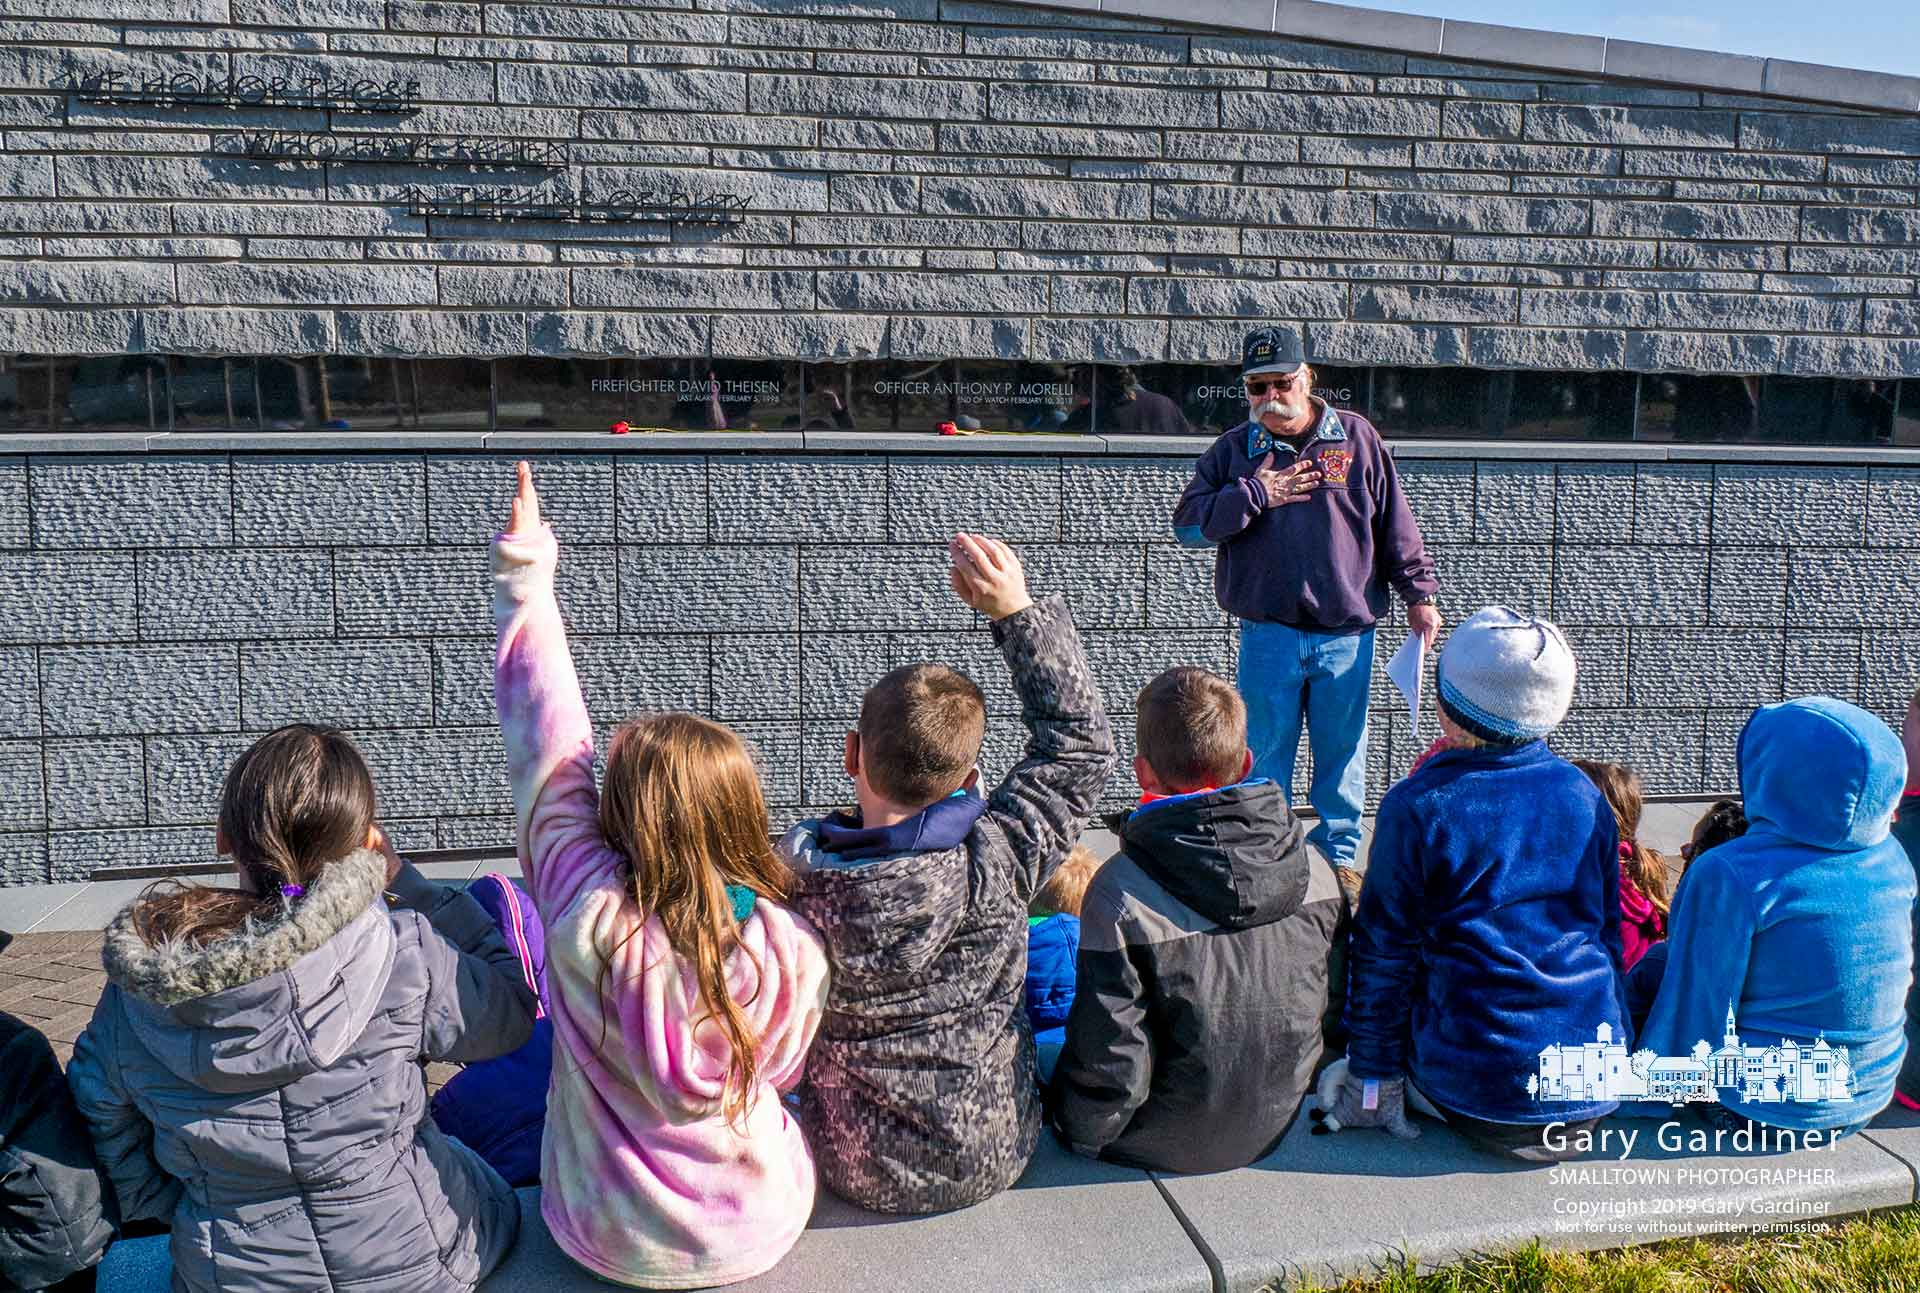 Retired Westerville firefighter Tom Ullom gestures as he completes explaining the park to three classes of students from Emerson Elementary at the end of their visit to First Responders Park on Main Street. My Final Photo for Nov. 20, 2019.